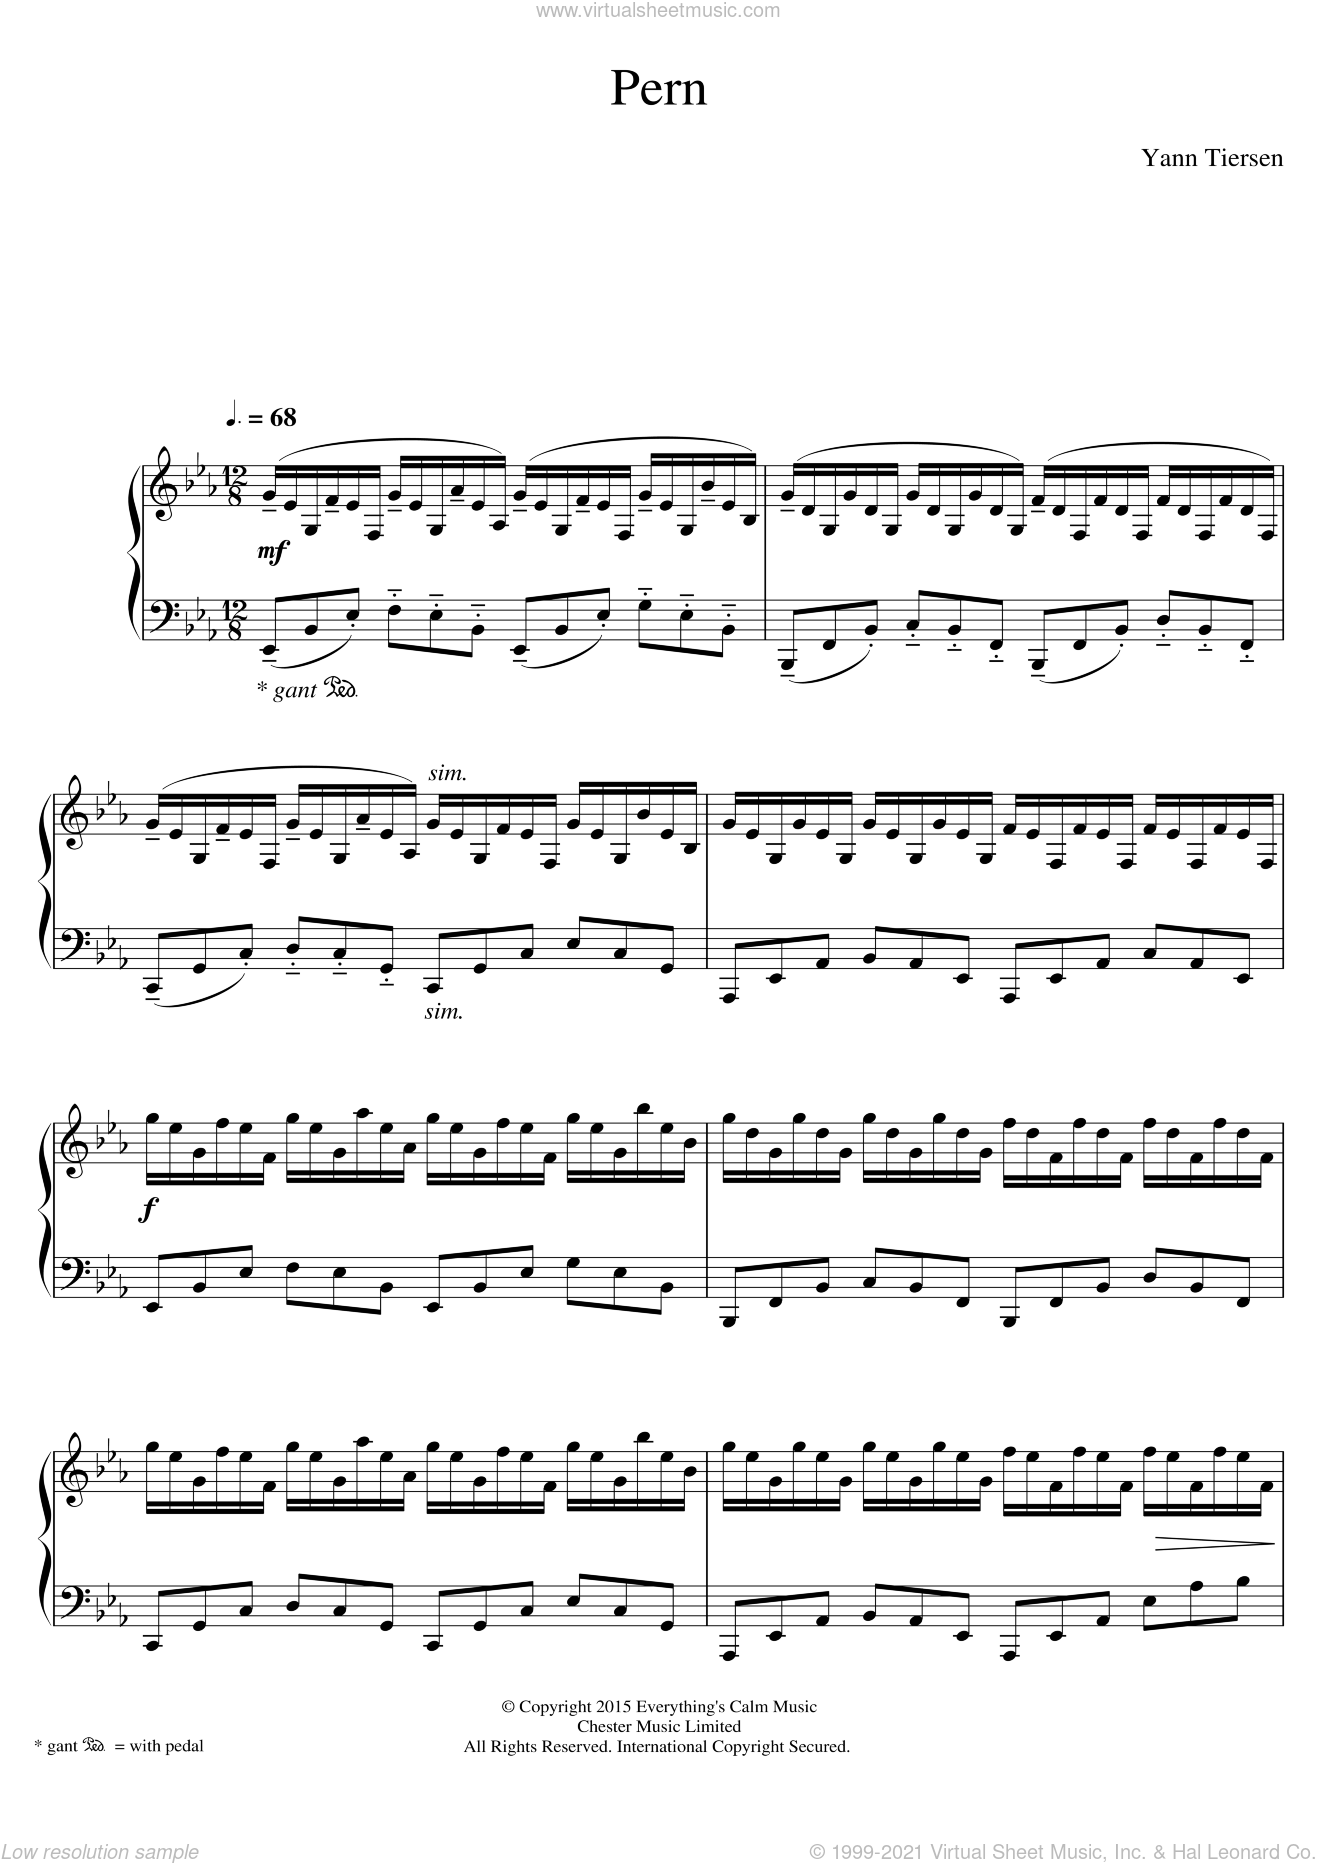 Pern sheet music for piano solo by Yann Tiersen, classical score, intermediate skill level